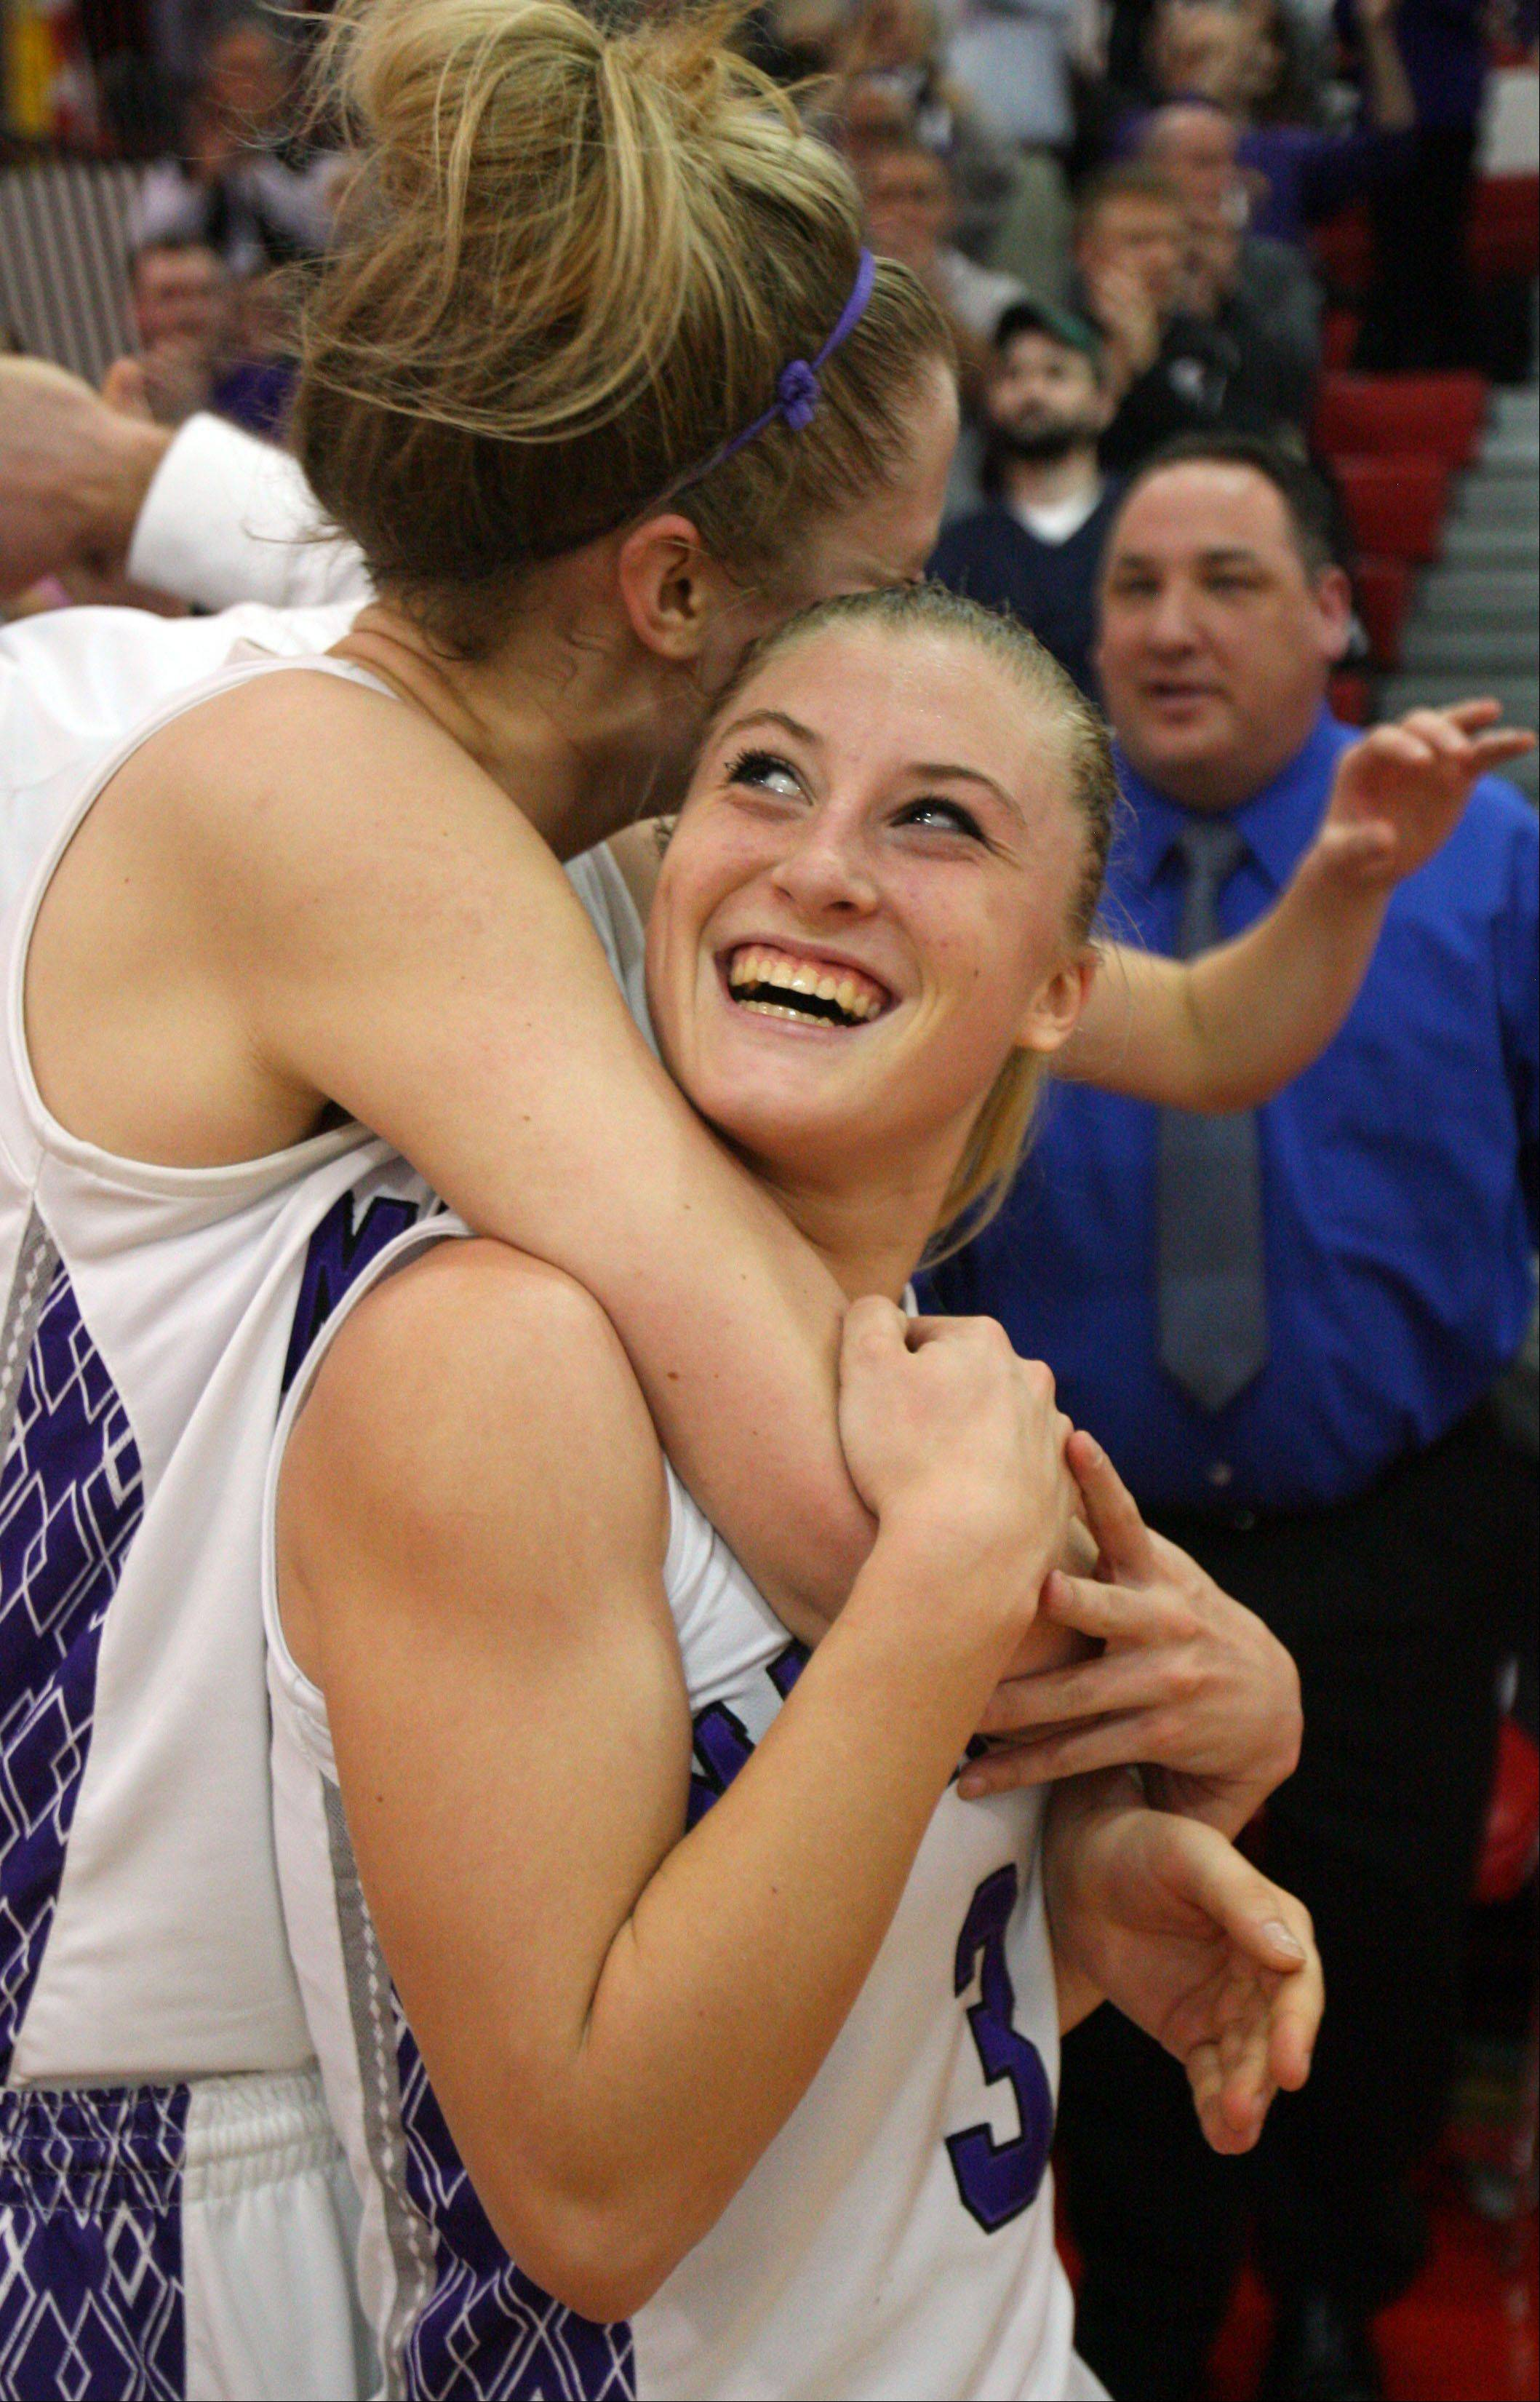 Rolling Meadows' Jenny Vliet, left, and Jackie Kemph celebrate after beating Evanston in Class 4A Niles West supersectional play Monday night in Skokie.